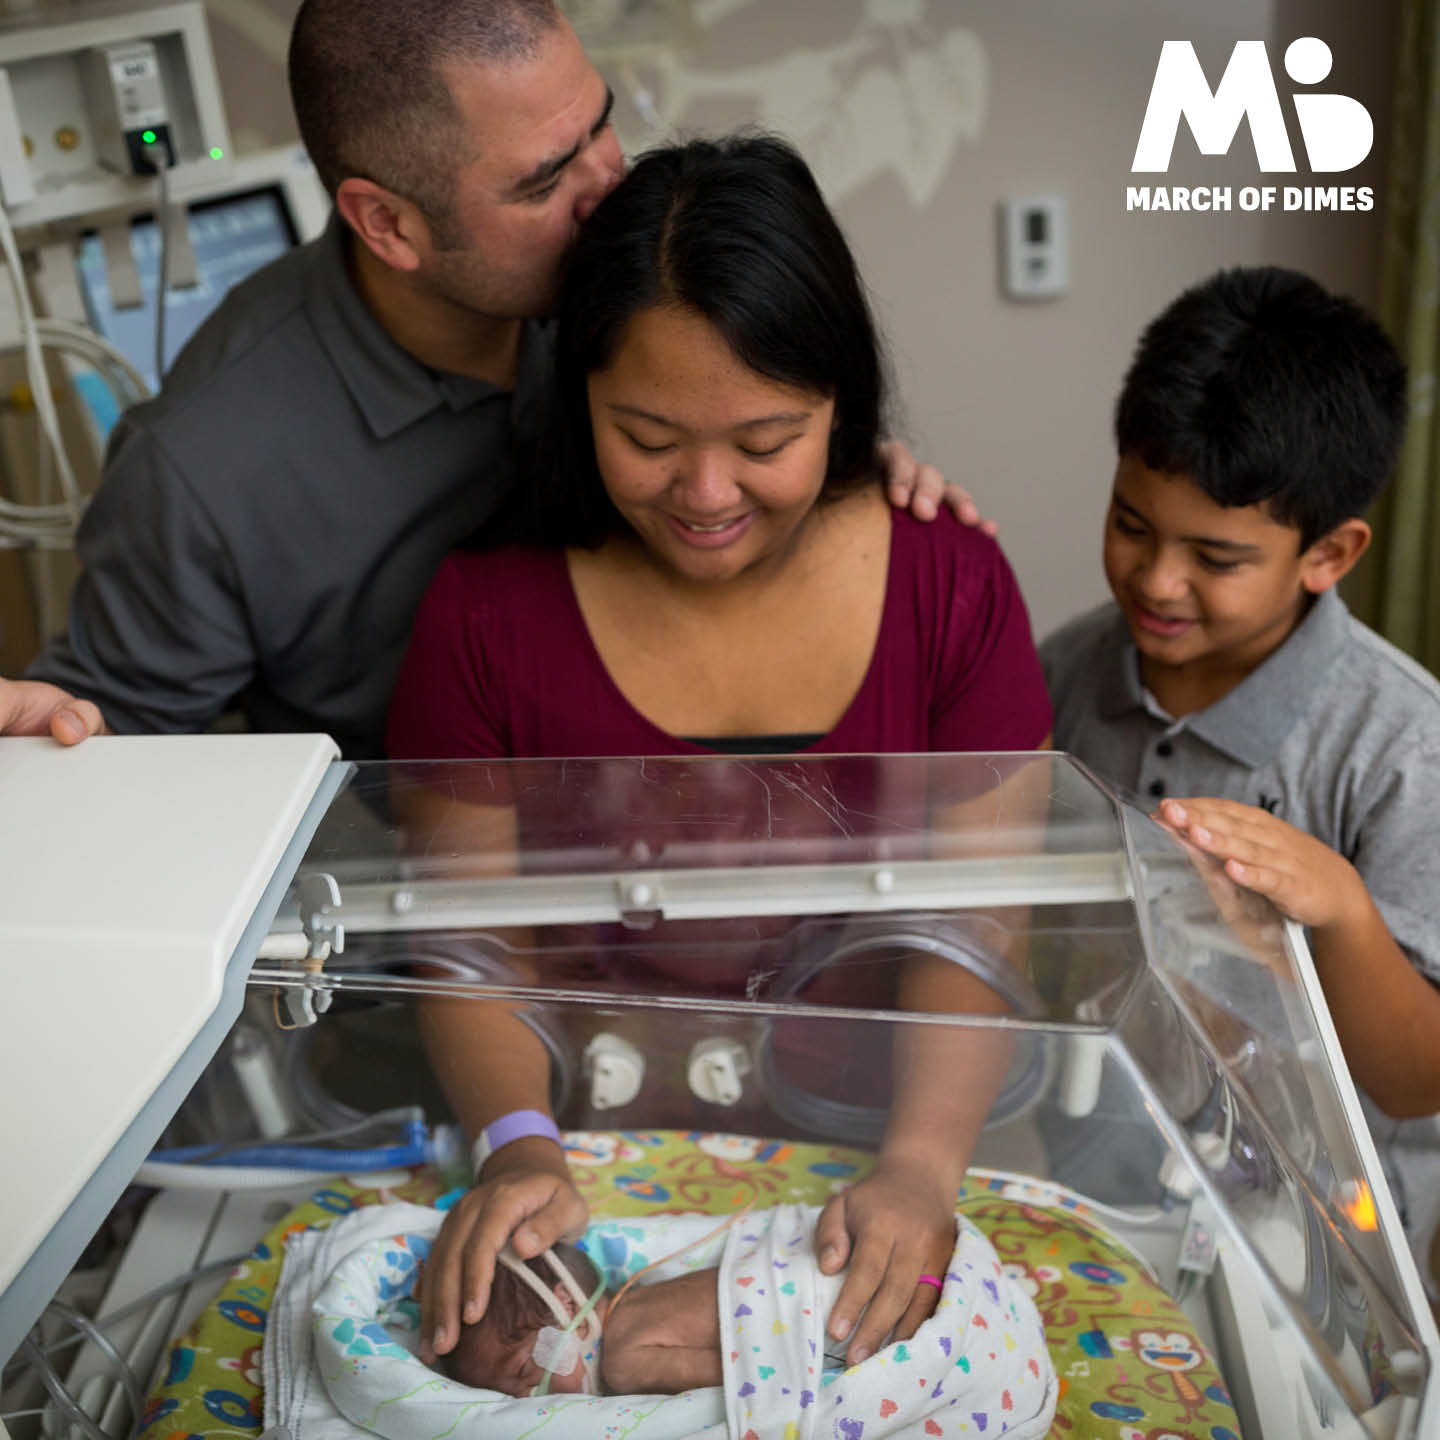 Having a baby in the NICU can be stressful for siblings